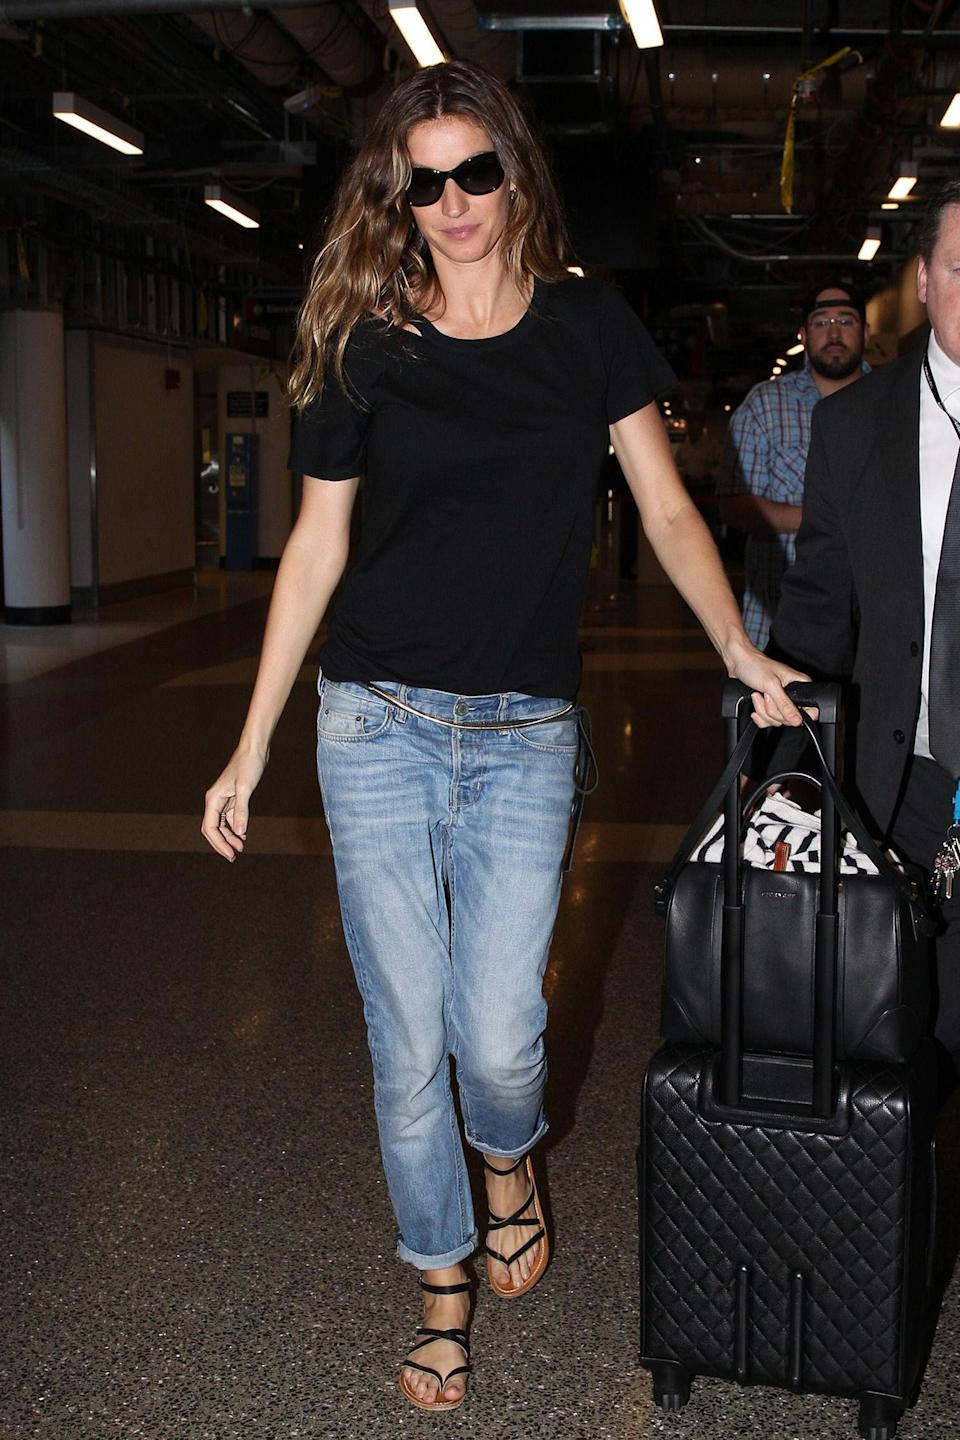 <p>Bündchen keeps it casual in the black version of the n:Philanthropy Harlow Distressed BFF Tee, styling it with boyfriend jeans and black sunglasses. (Photo: Patriot Pics/ ACKGRID)<br><br></p>